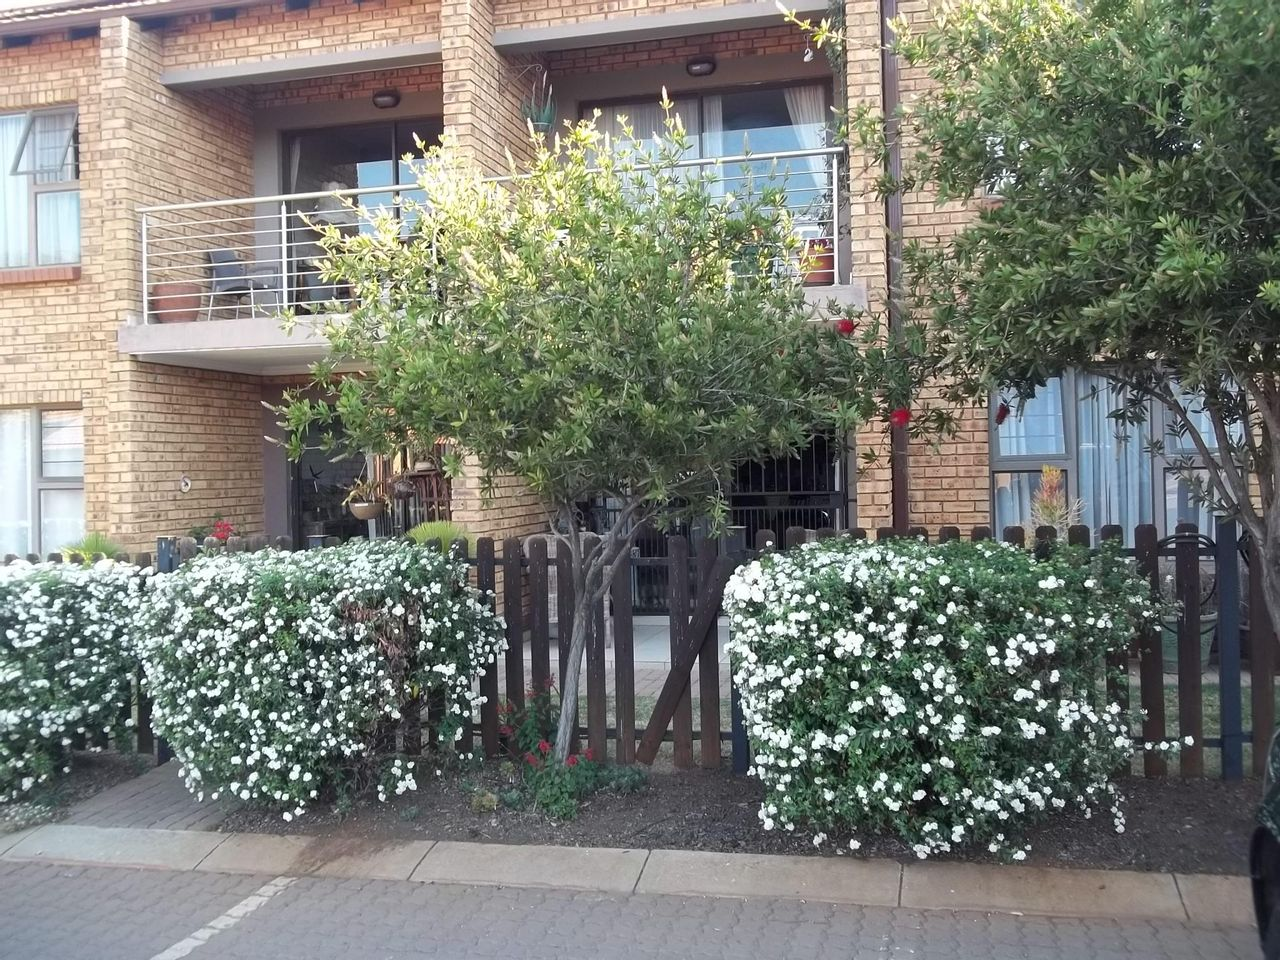 2 Bedroom Flat For Sale in Willow Park Manor